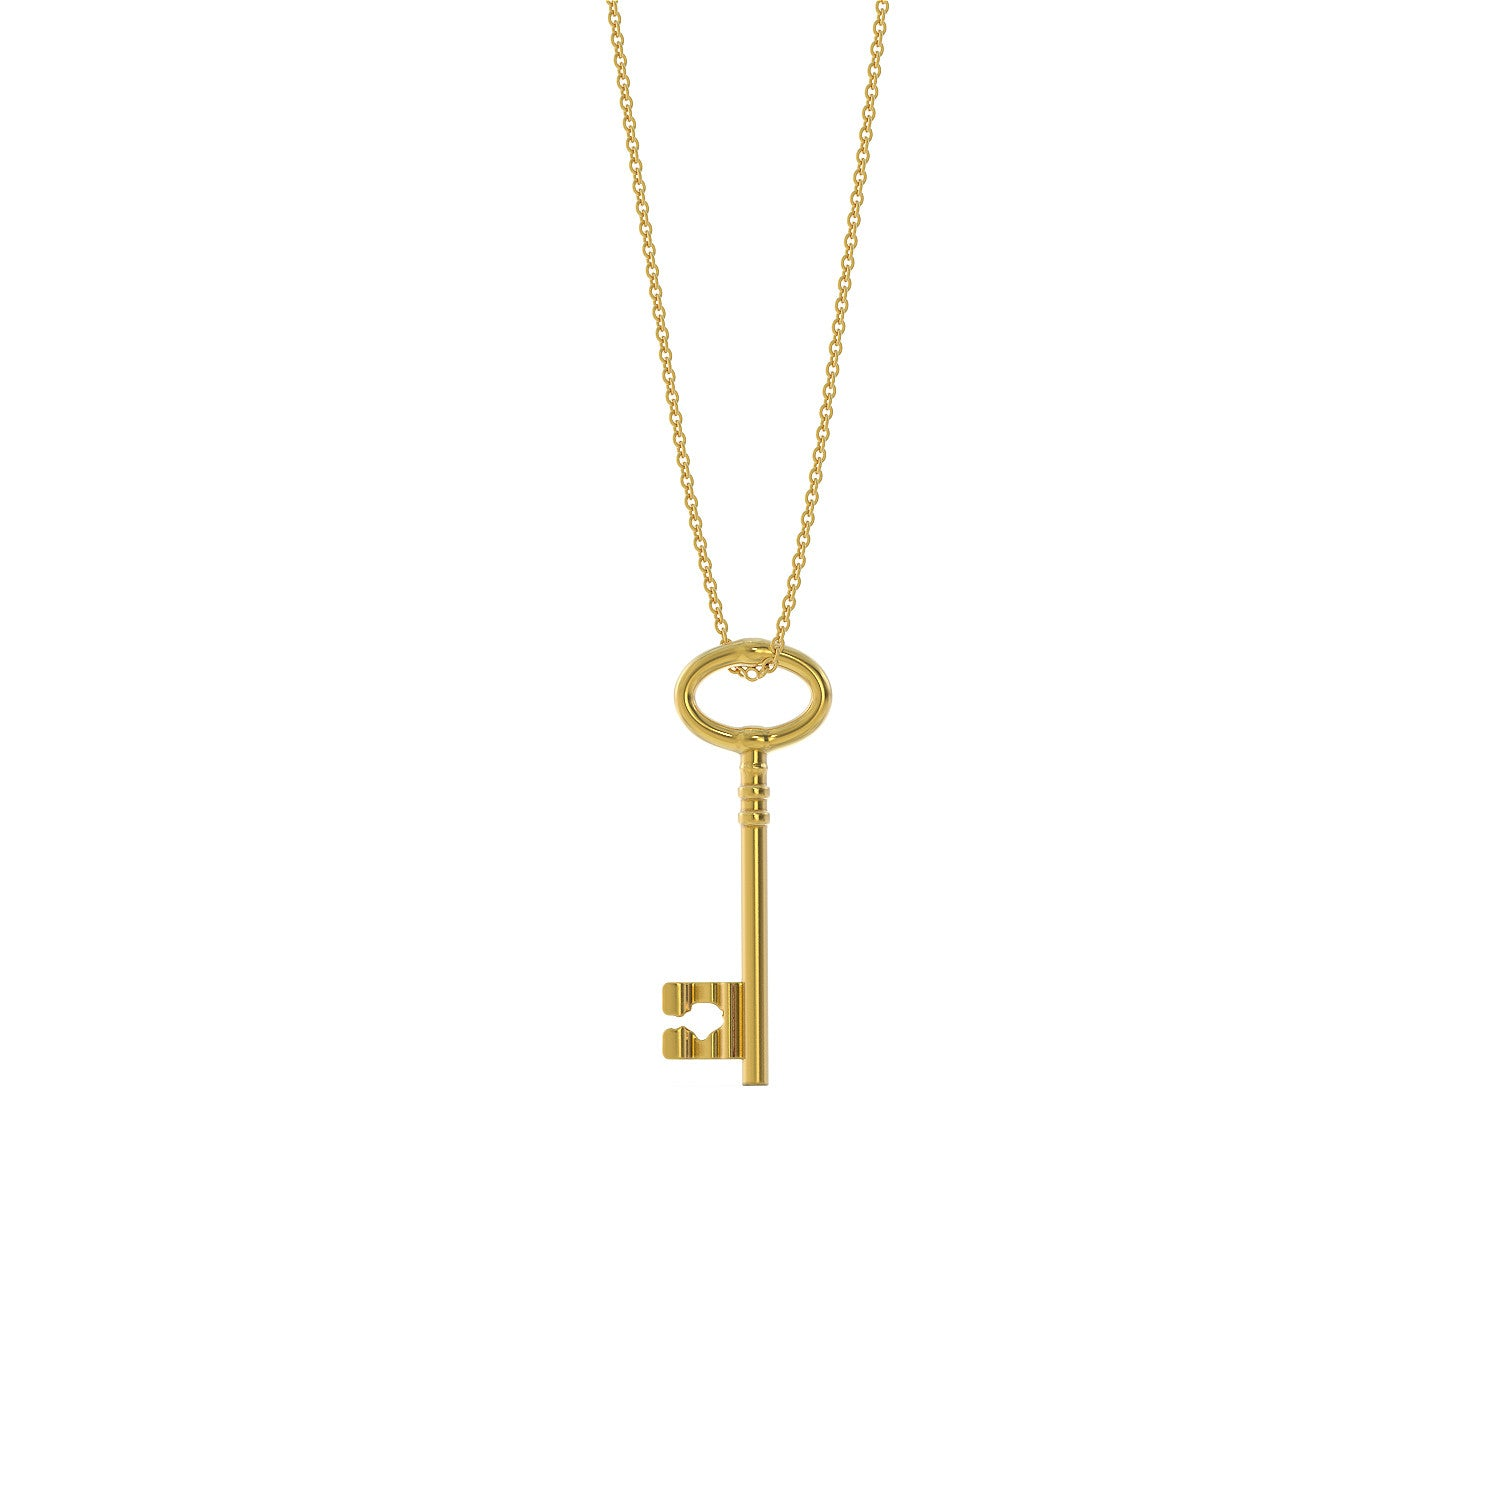 Confidence is Key Necklace - STRICTLY LIMITED EDITION